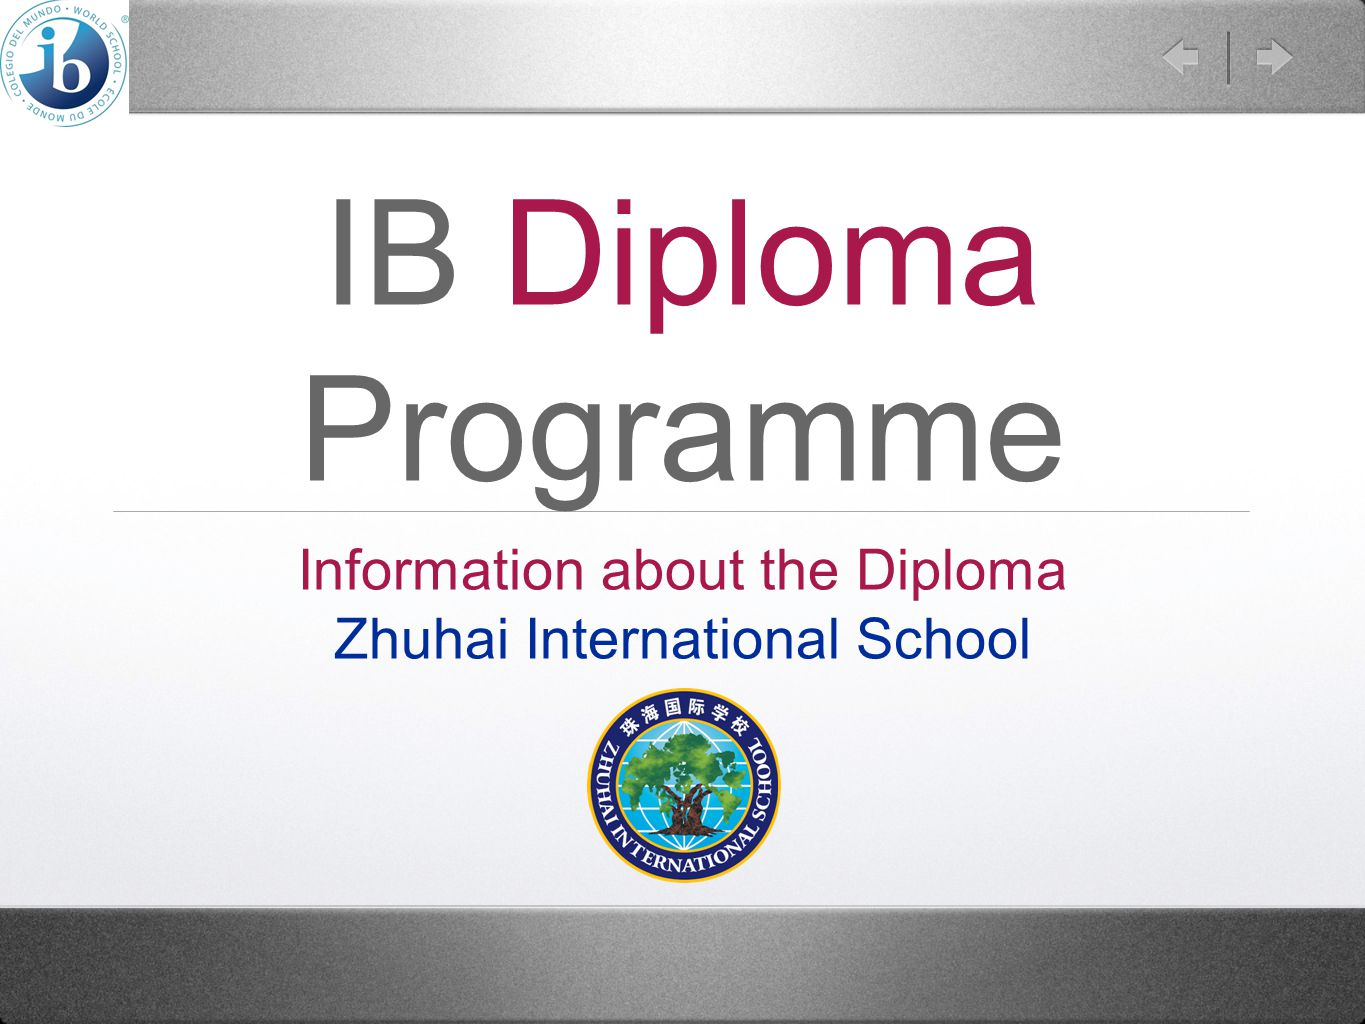 IB Diploma Programme Information about the Diploma Zhuhai International School